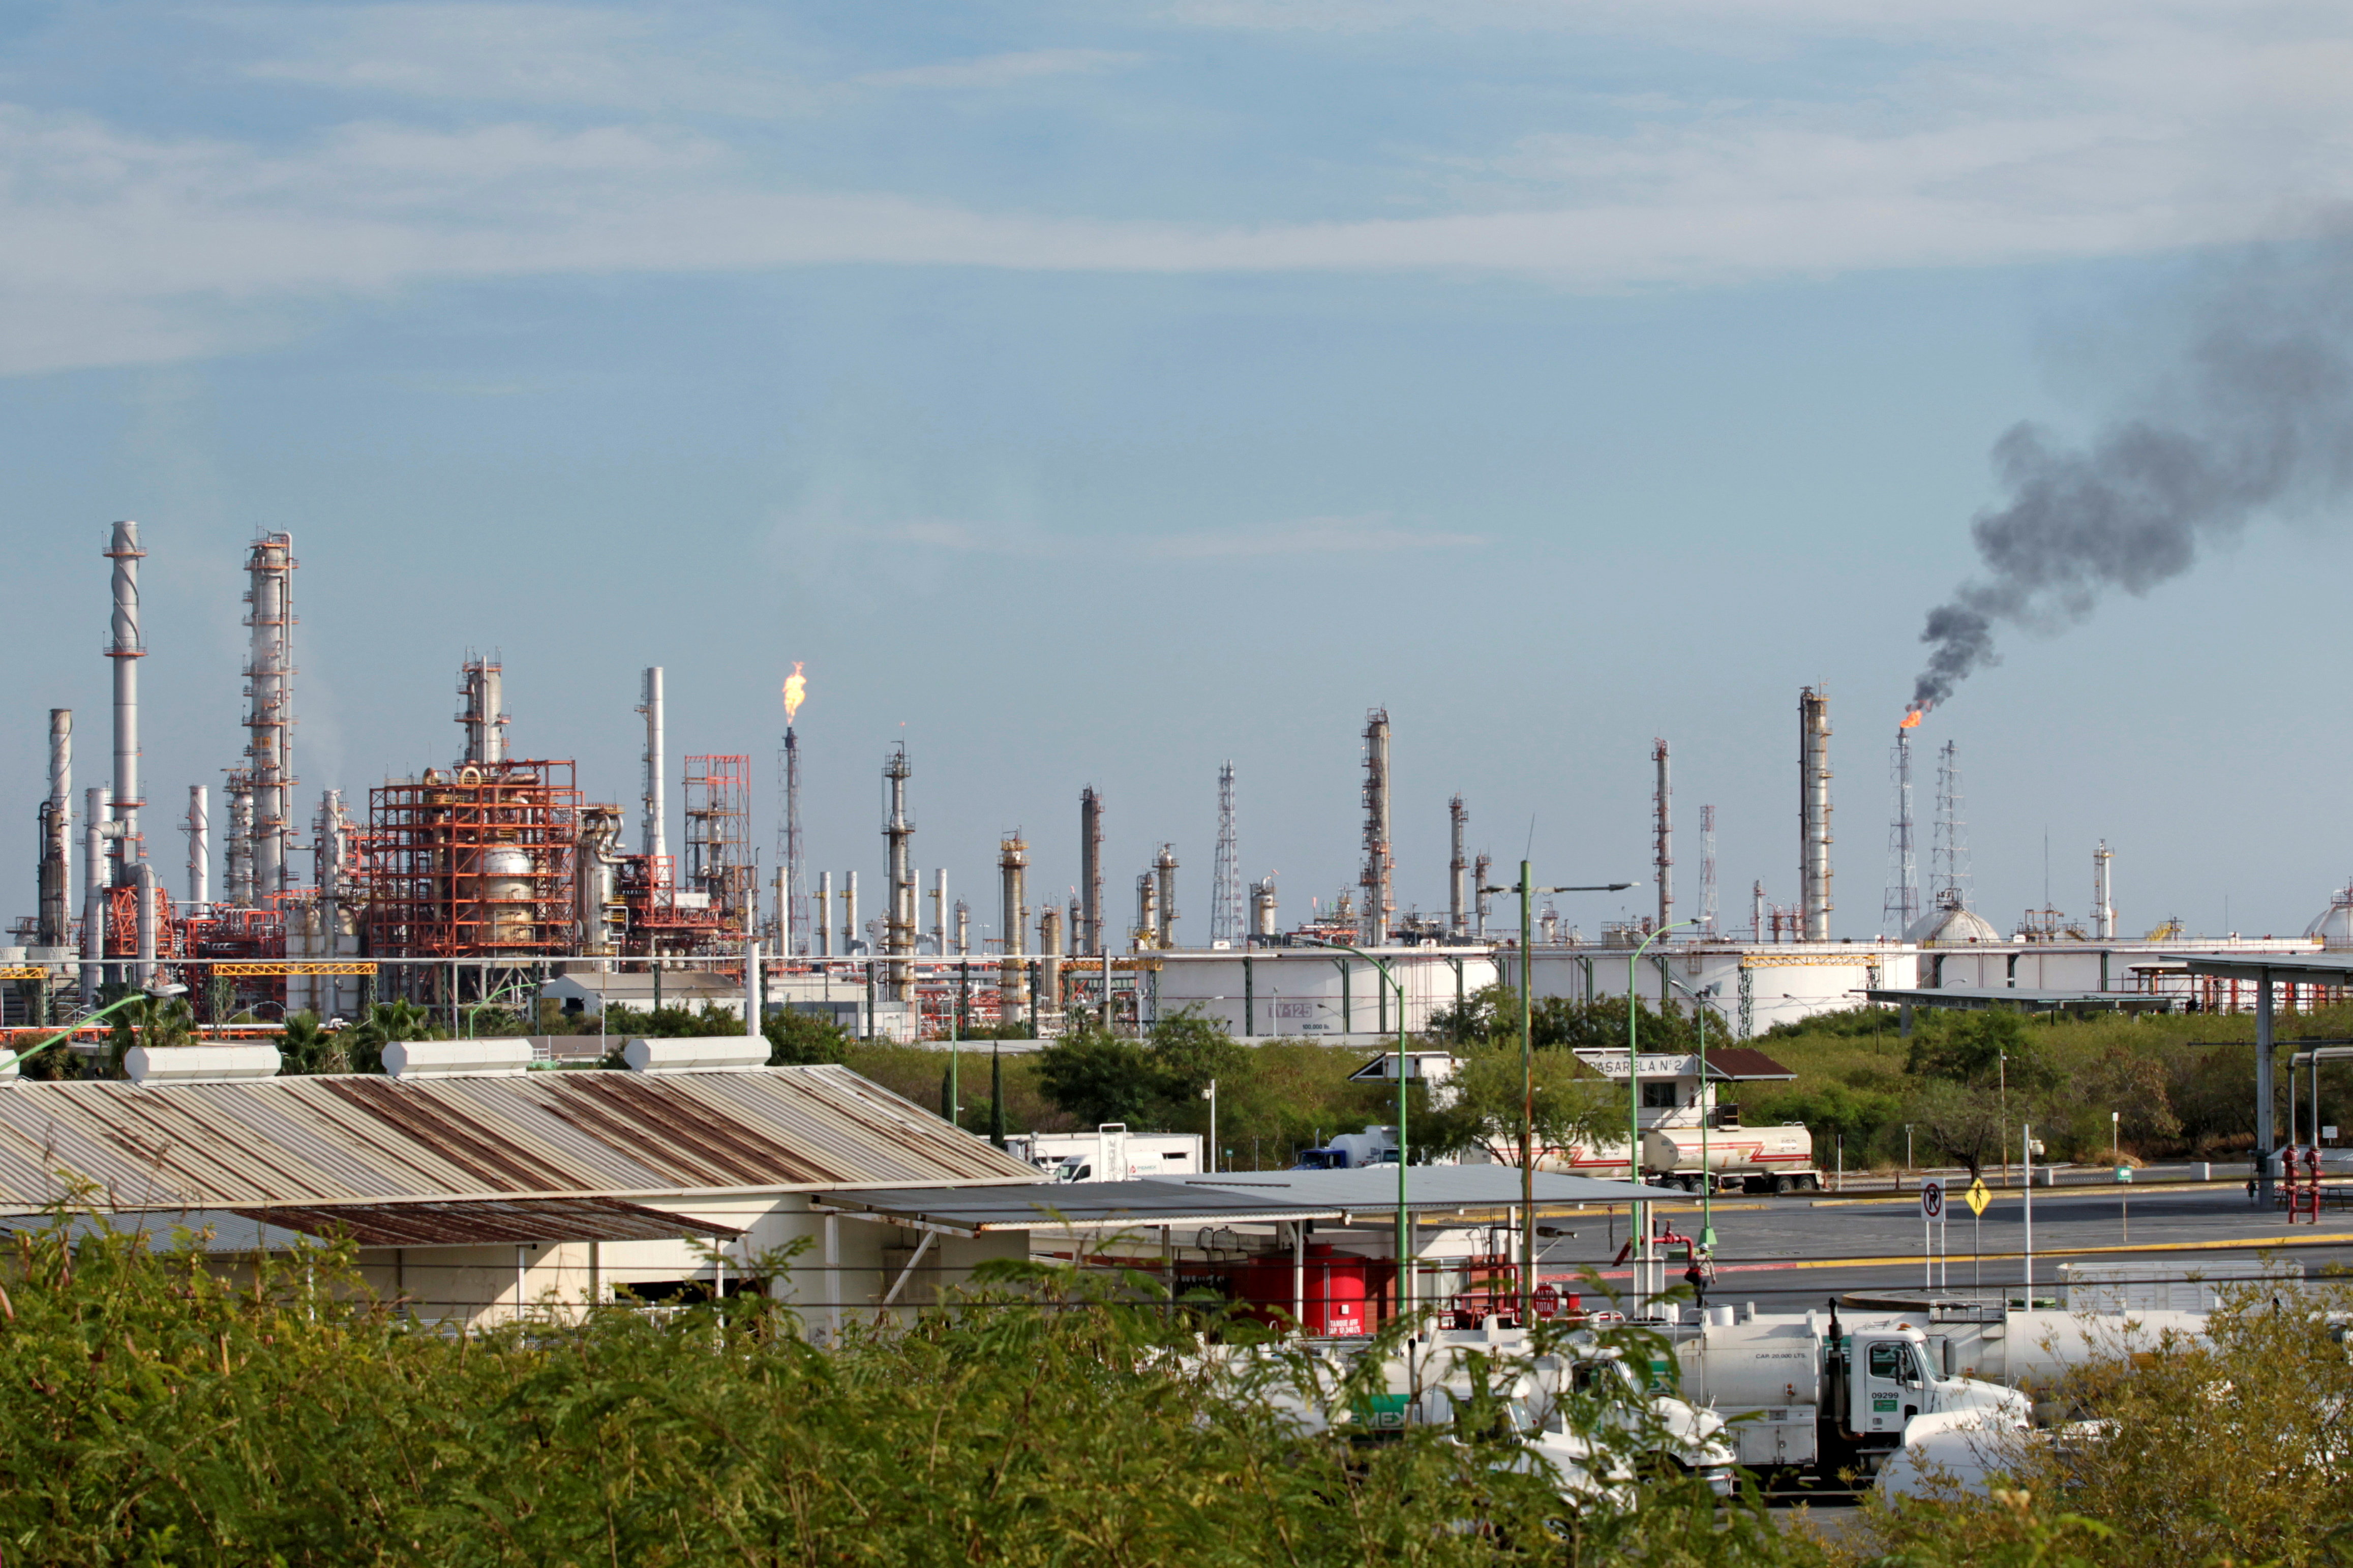 A general view shows Mexican state oil firm Pemex's Cadereyta refinery in Cadereyta, on the outskirts of Monterrey, Mexico, December 10, 2020. REUTERS/Daniel Becerril/File Photo